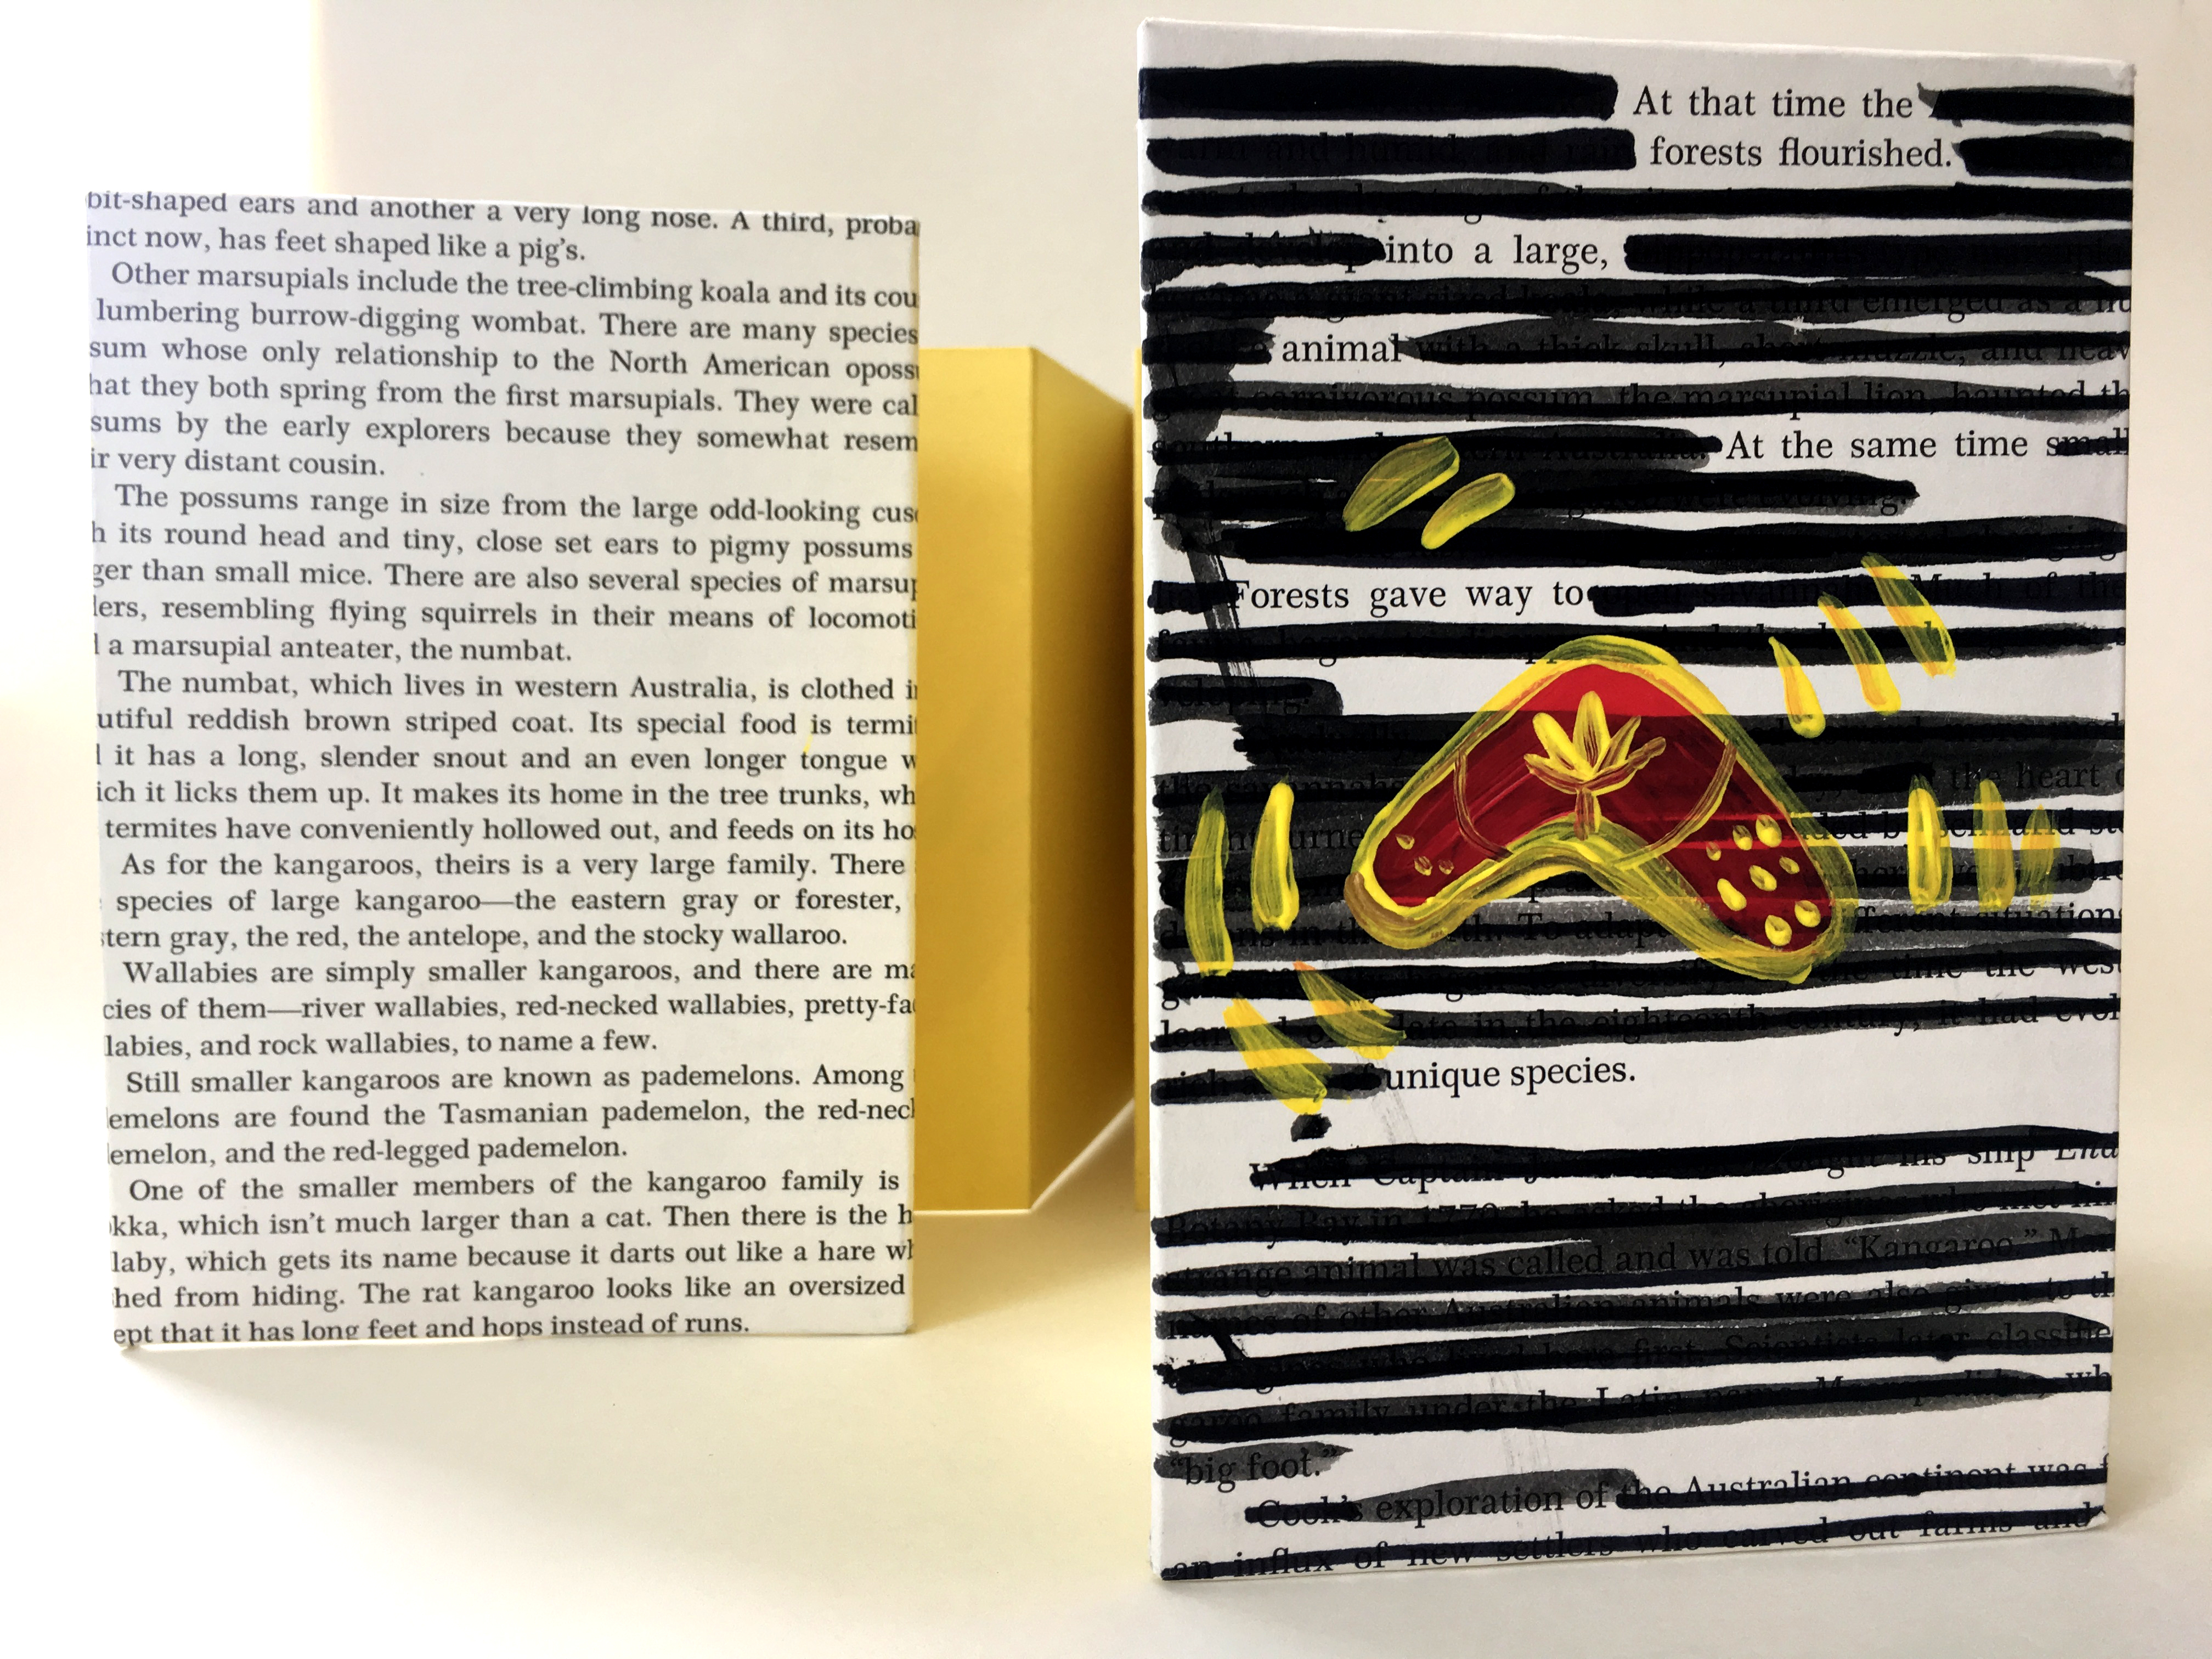 Picture of an accordion book with blackout poetry as the cover.